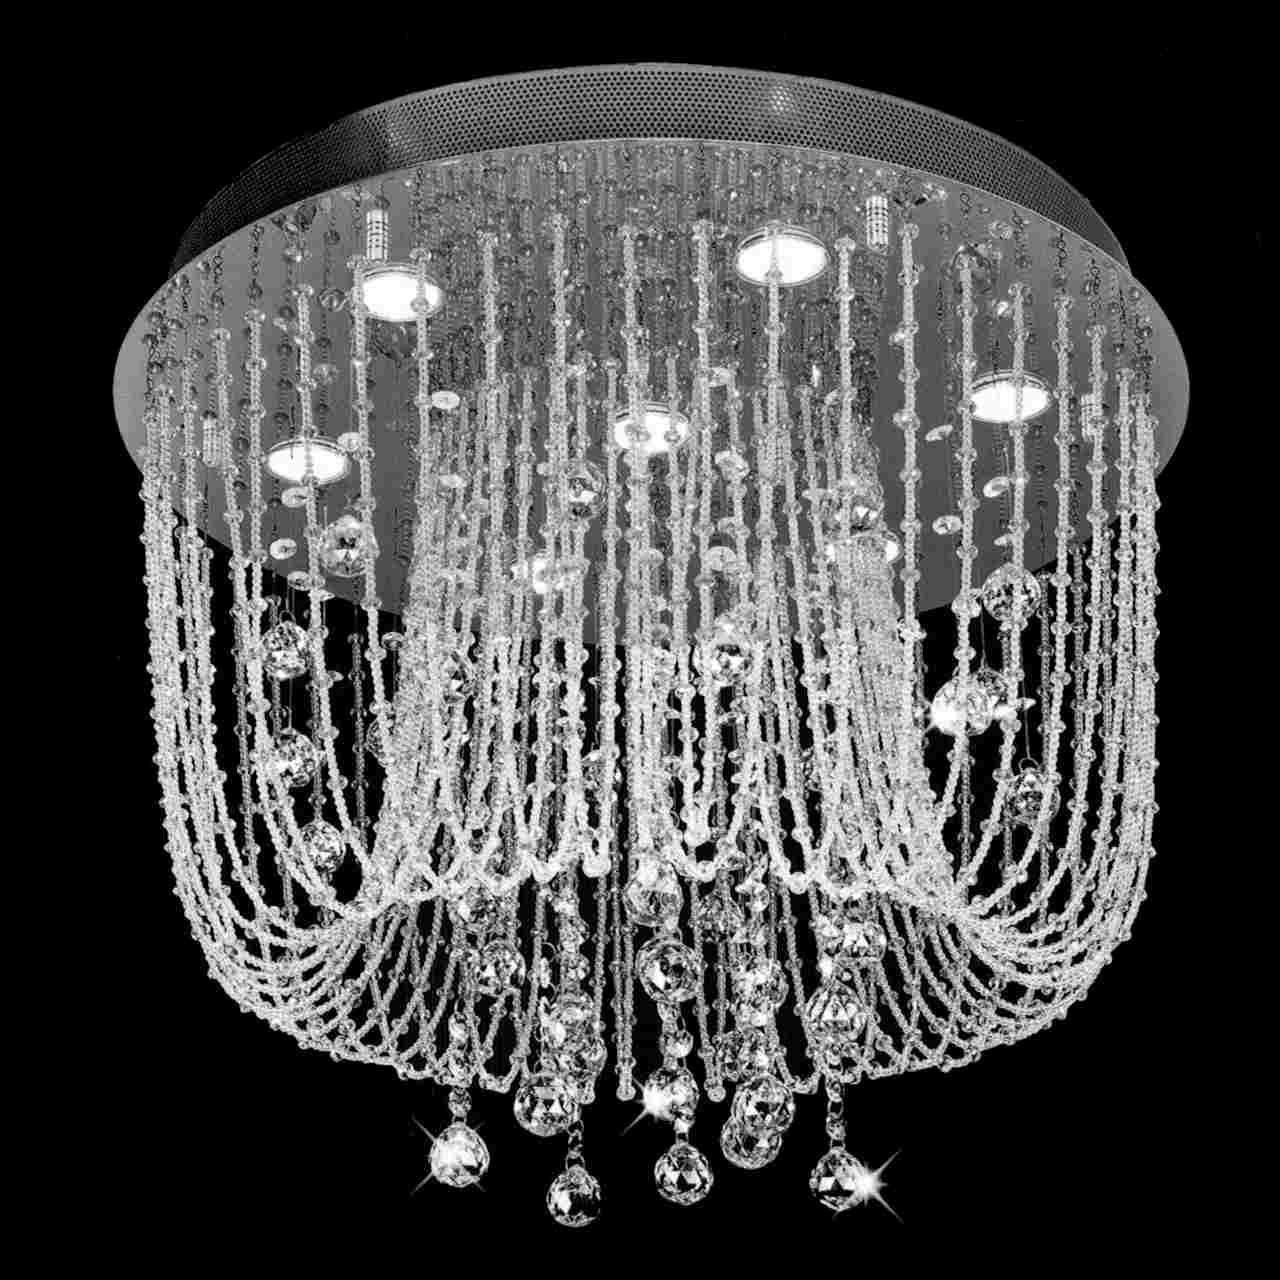 Brizzo Lighting Stores 24 Chateaux Modern Foyer Crystal For Crystal Gold Chandeliers (Image 3 of 25)